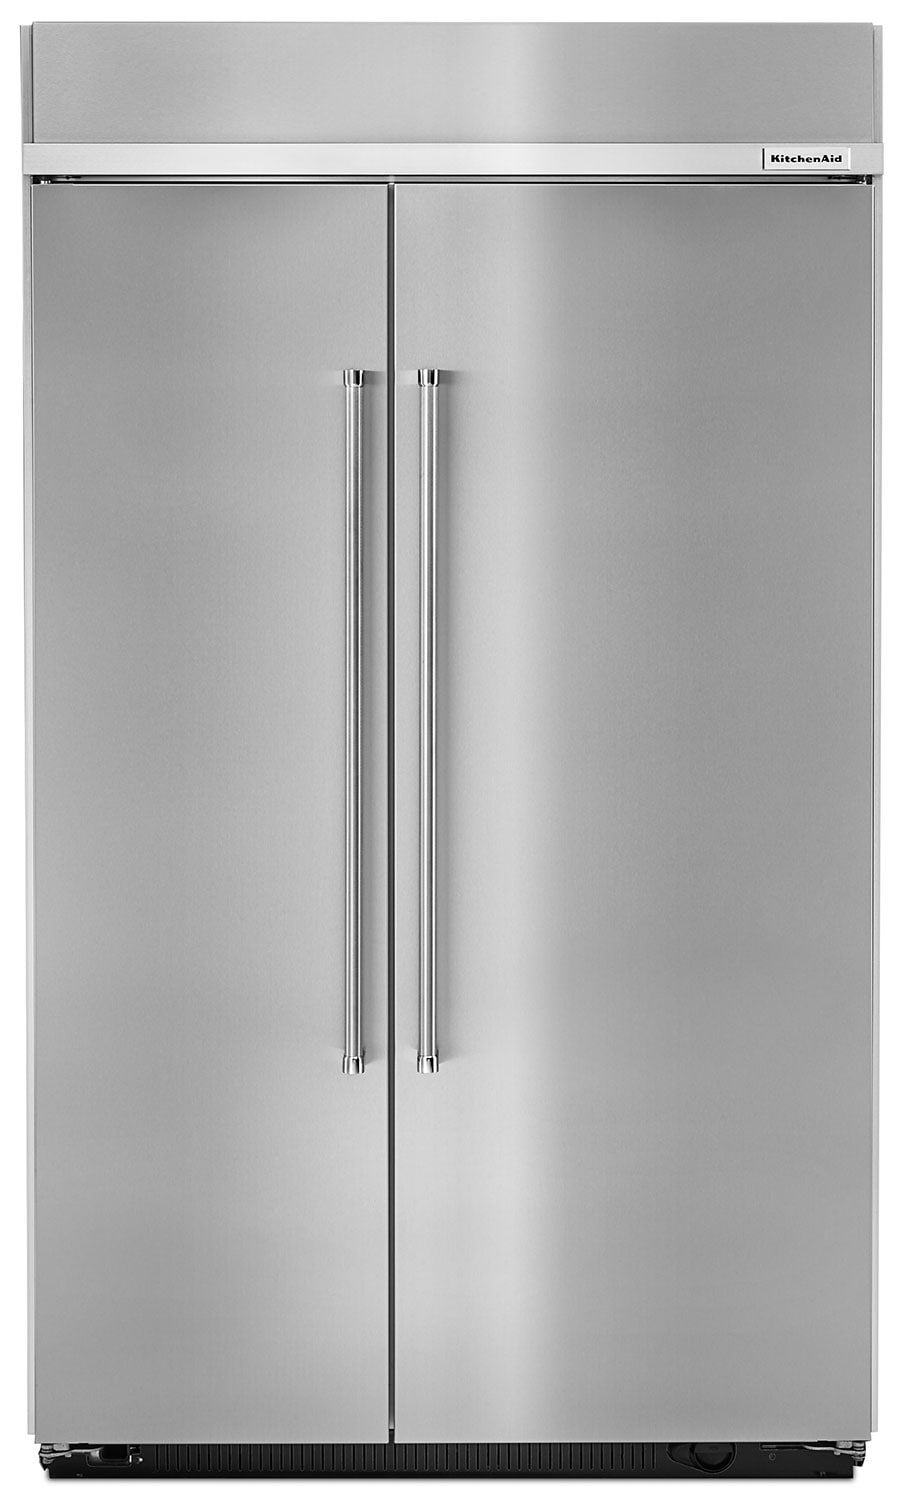 Refrigerators and Freezers - KitchenAid Stainless Steel Side-by-Side Refrigerator (30.0 Cu. Ft.) - KKBSN608ESS